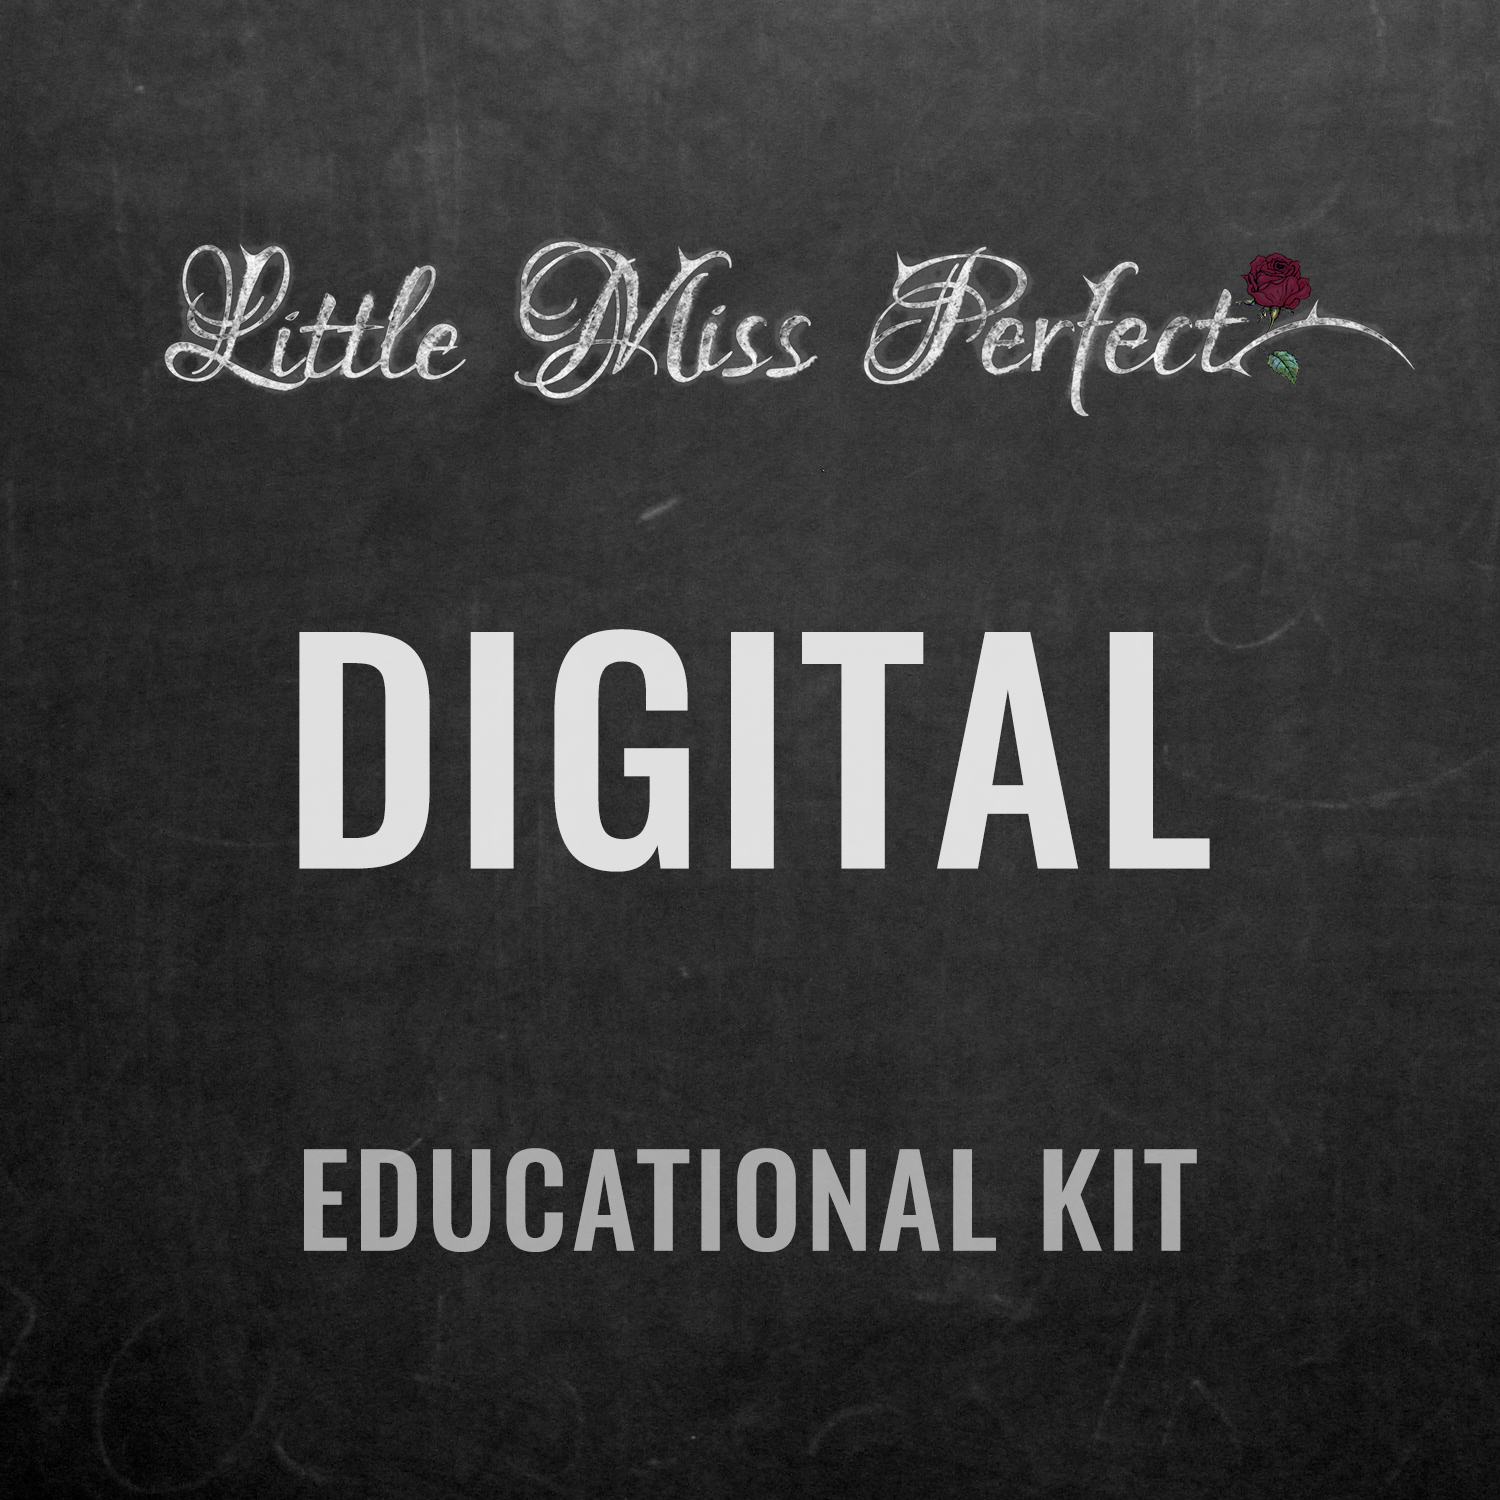 Digital_Kit.jpg